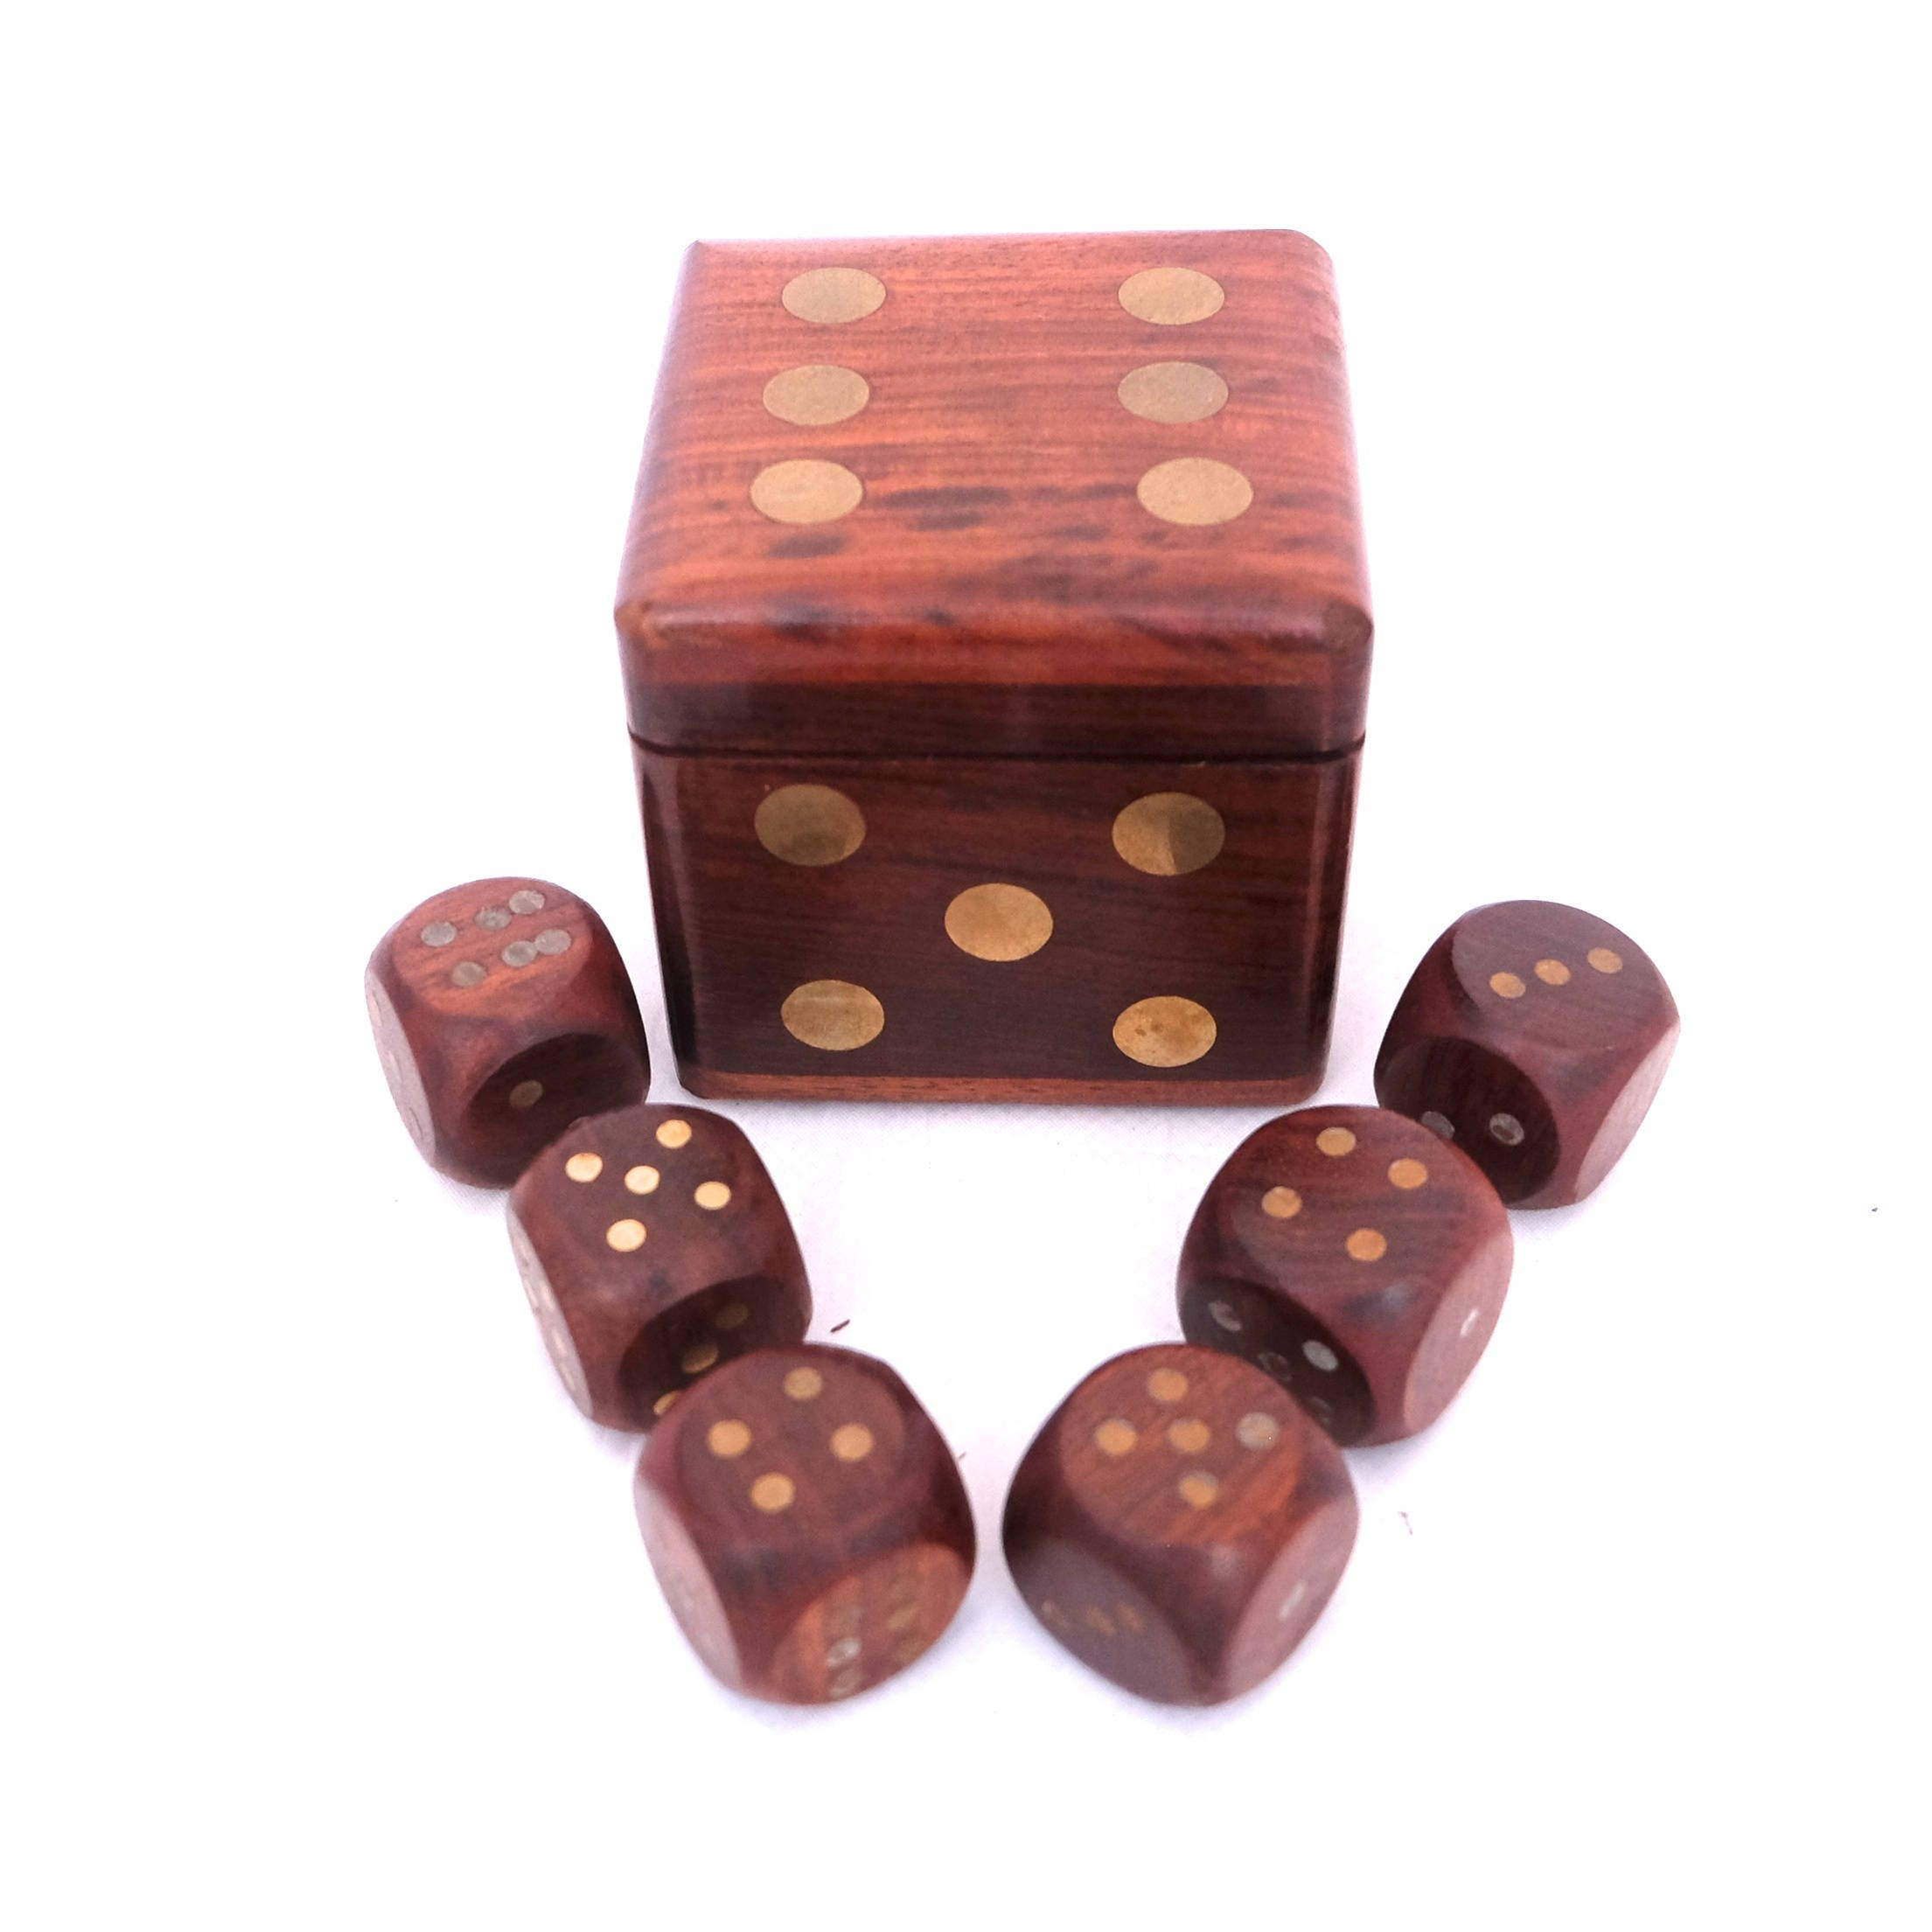 Wooden Dice Box Set Of Wooden  Brass Dice Games Dice Vintage Dice Box Casino Games Box Games Box Indian Wooden Box Brass Inlaid Box